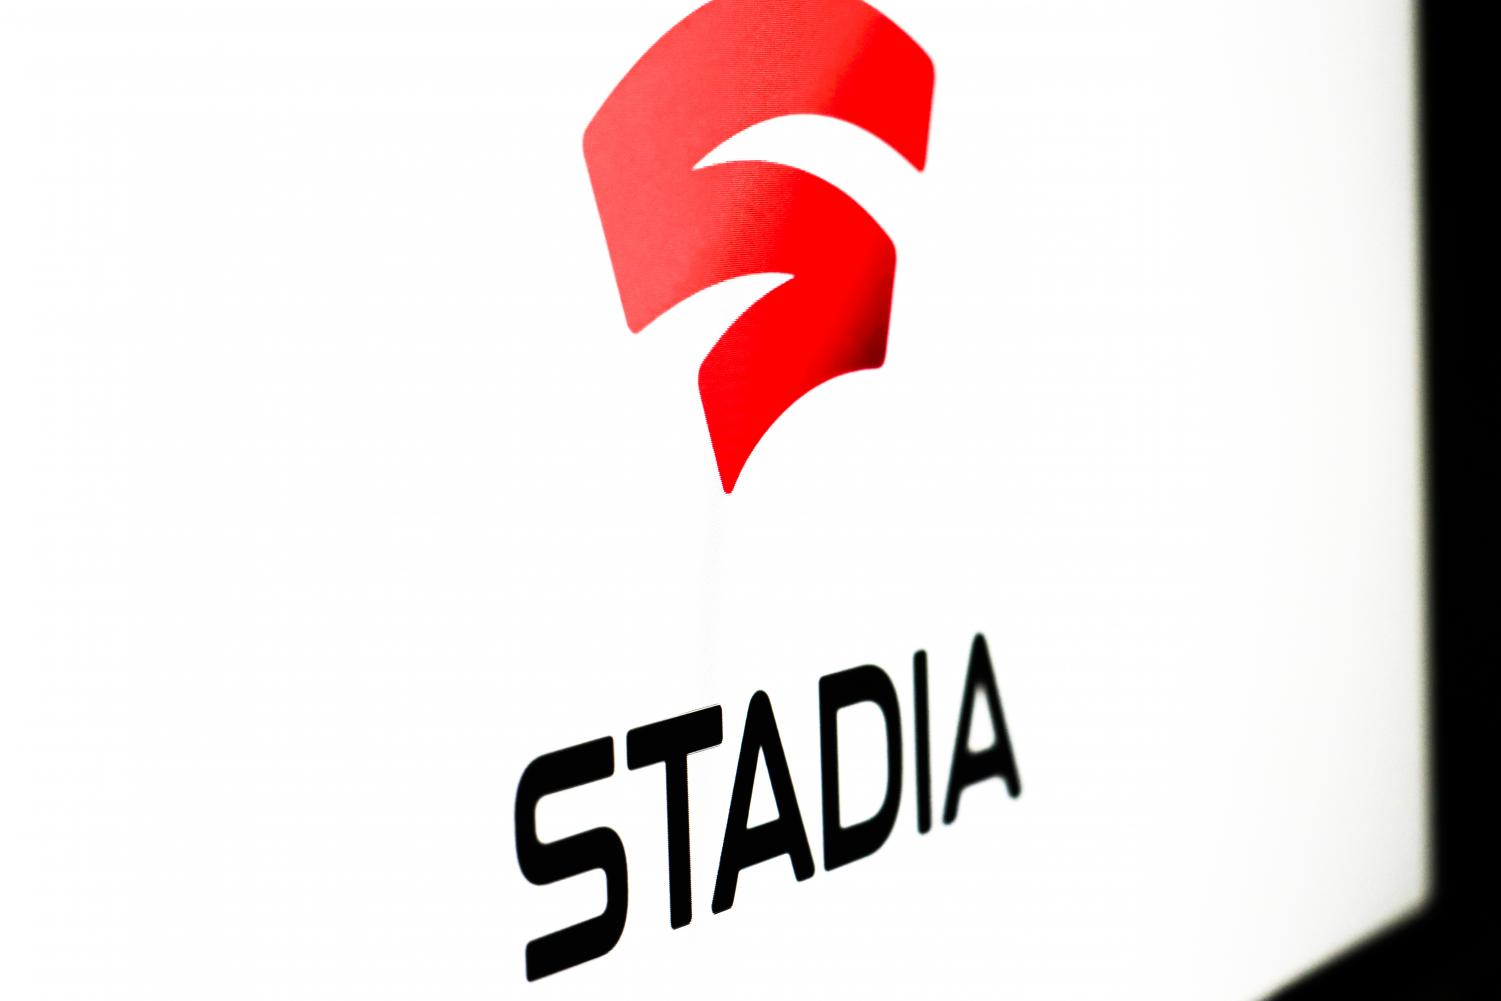 GAMING TREND: Google Stadia is a new frontier of gaming. Although it is too early to tell, the possibilities that Google Stadia present are numerous, and could just about revolutionize the gaming industry as a whole.